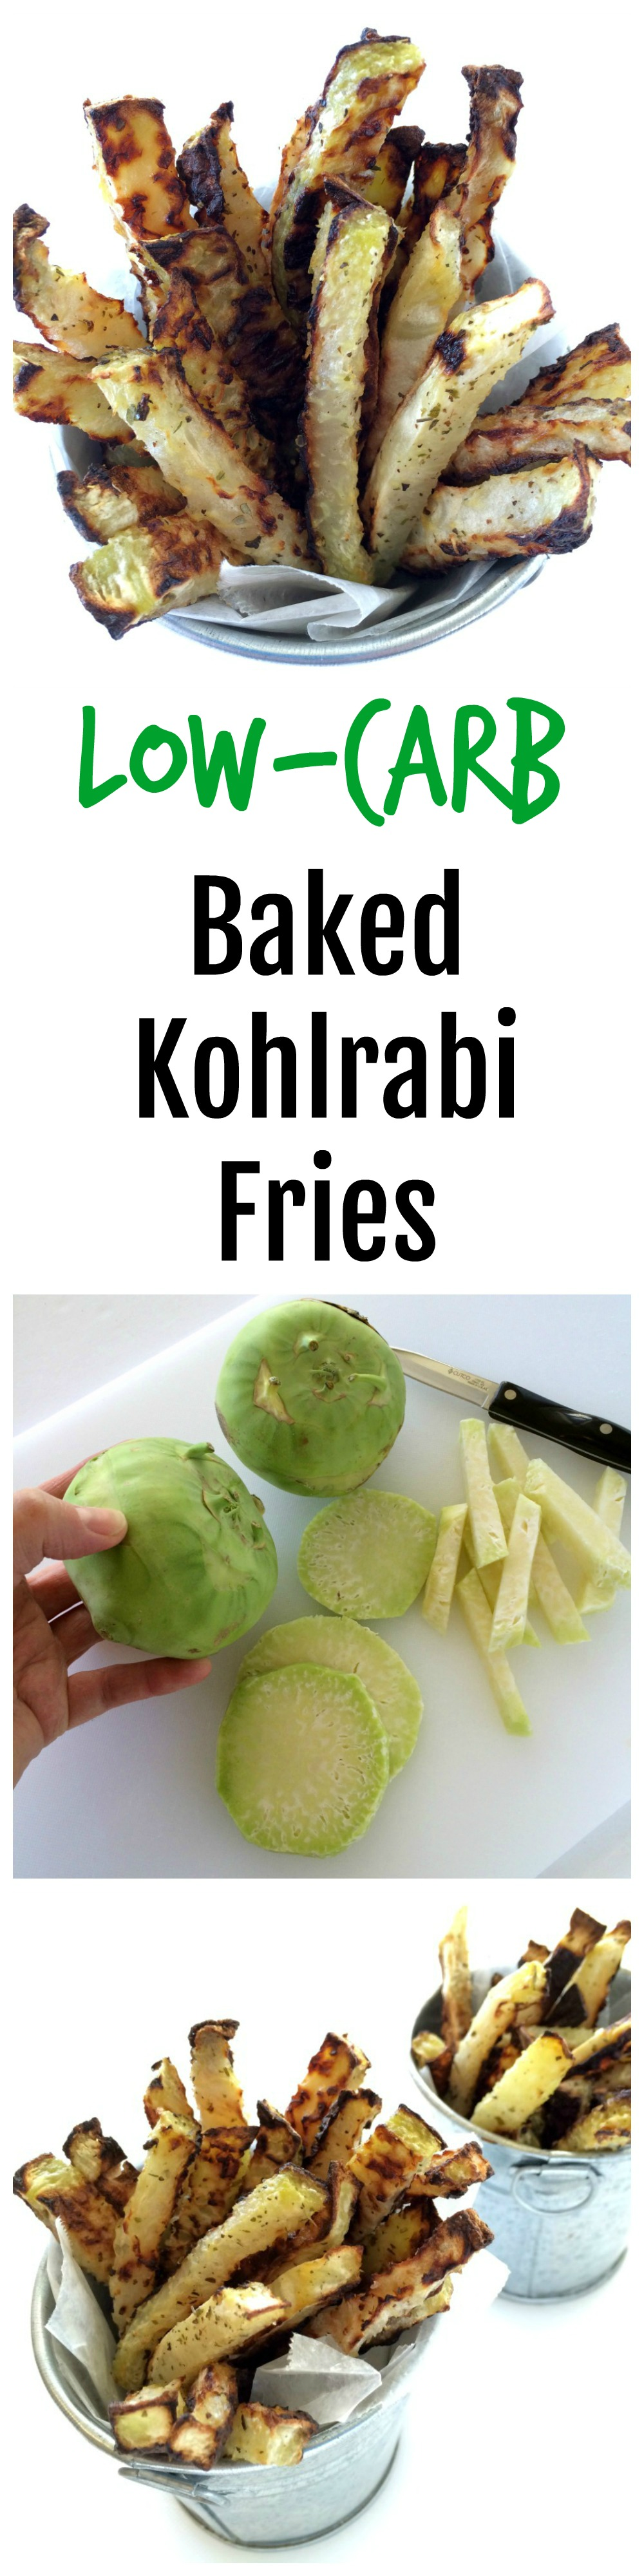 Collage of photos showing Vegan Low-Carb Baked Kohlrabi Fries on ShockinglyDelicious.com